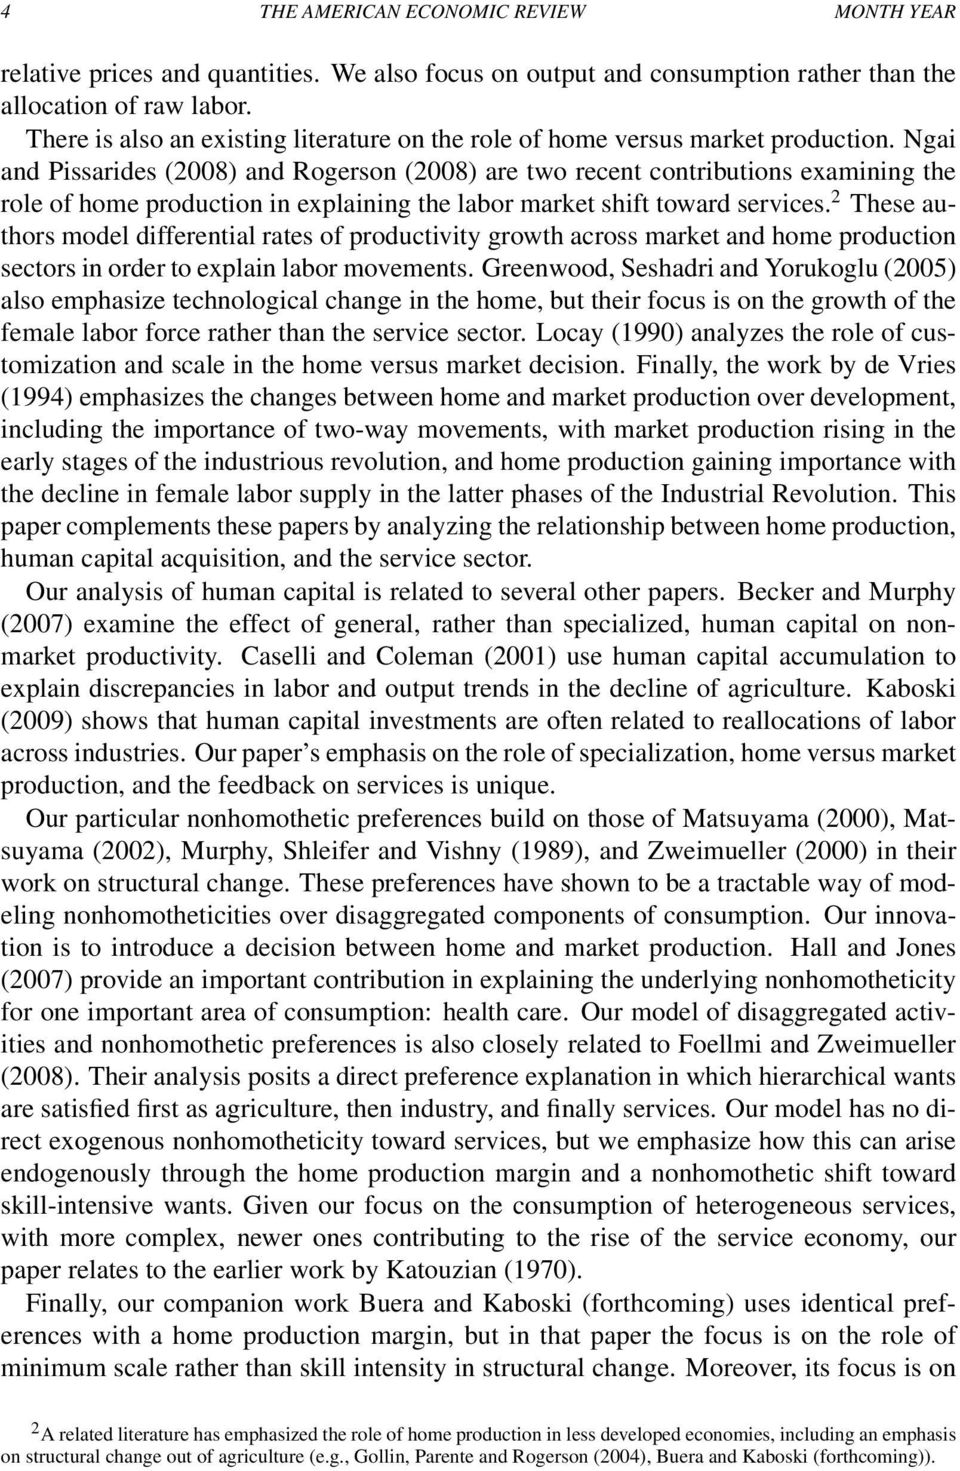 Ngai and Pissarides (2008) and Rogerson (2008) are two recent contributions examining the role of home production in explaining the labor market shift toward services.